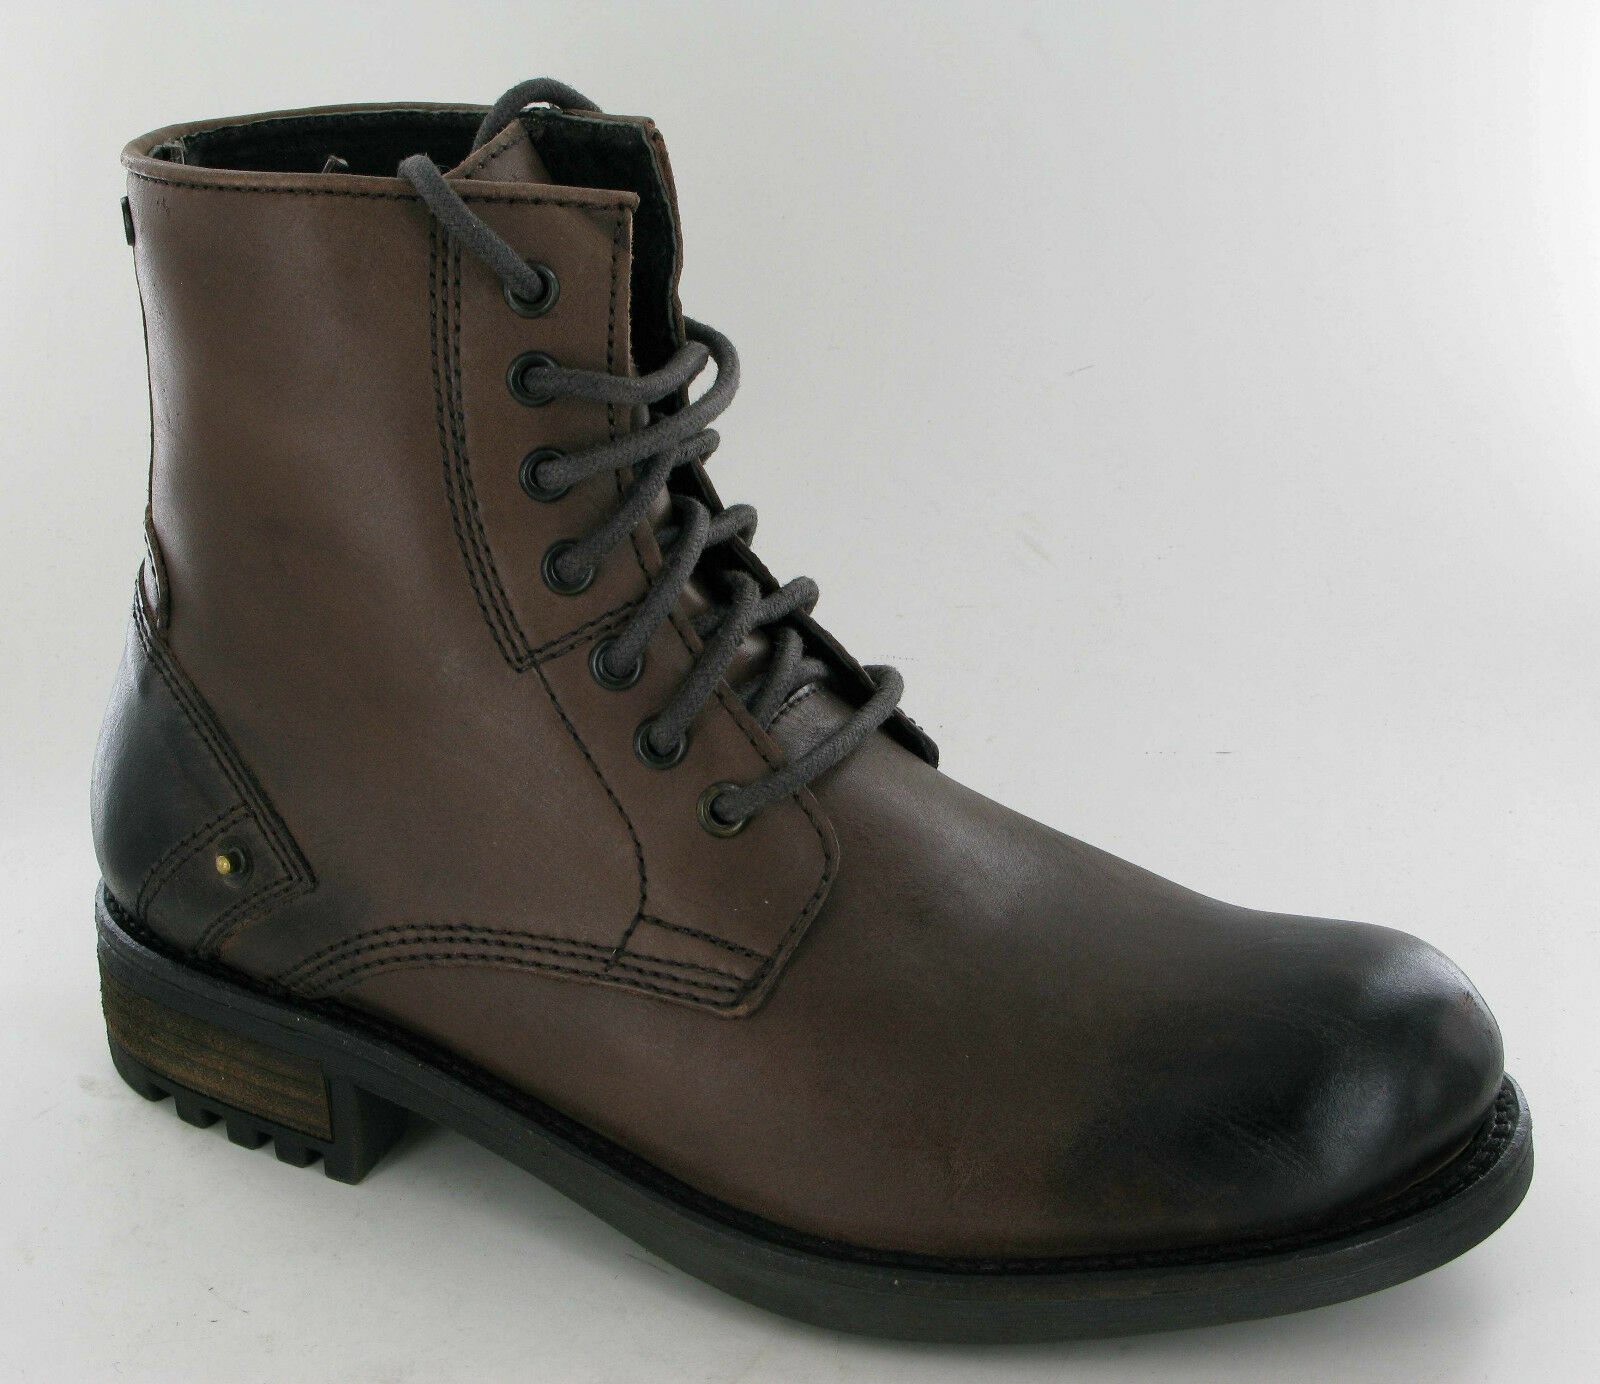 herren MILITARY BASE LONDON COMBAT ARMY LACE UP ANKLE Stiefel UK Größe 6 7 8 9 11 12